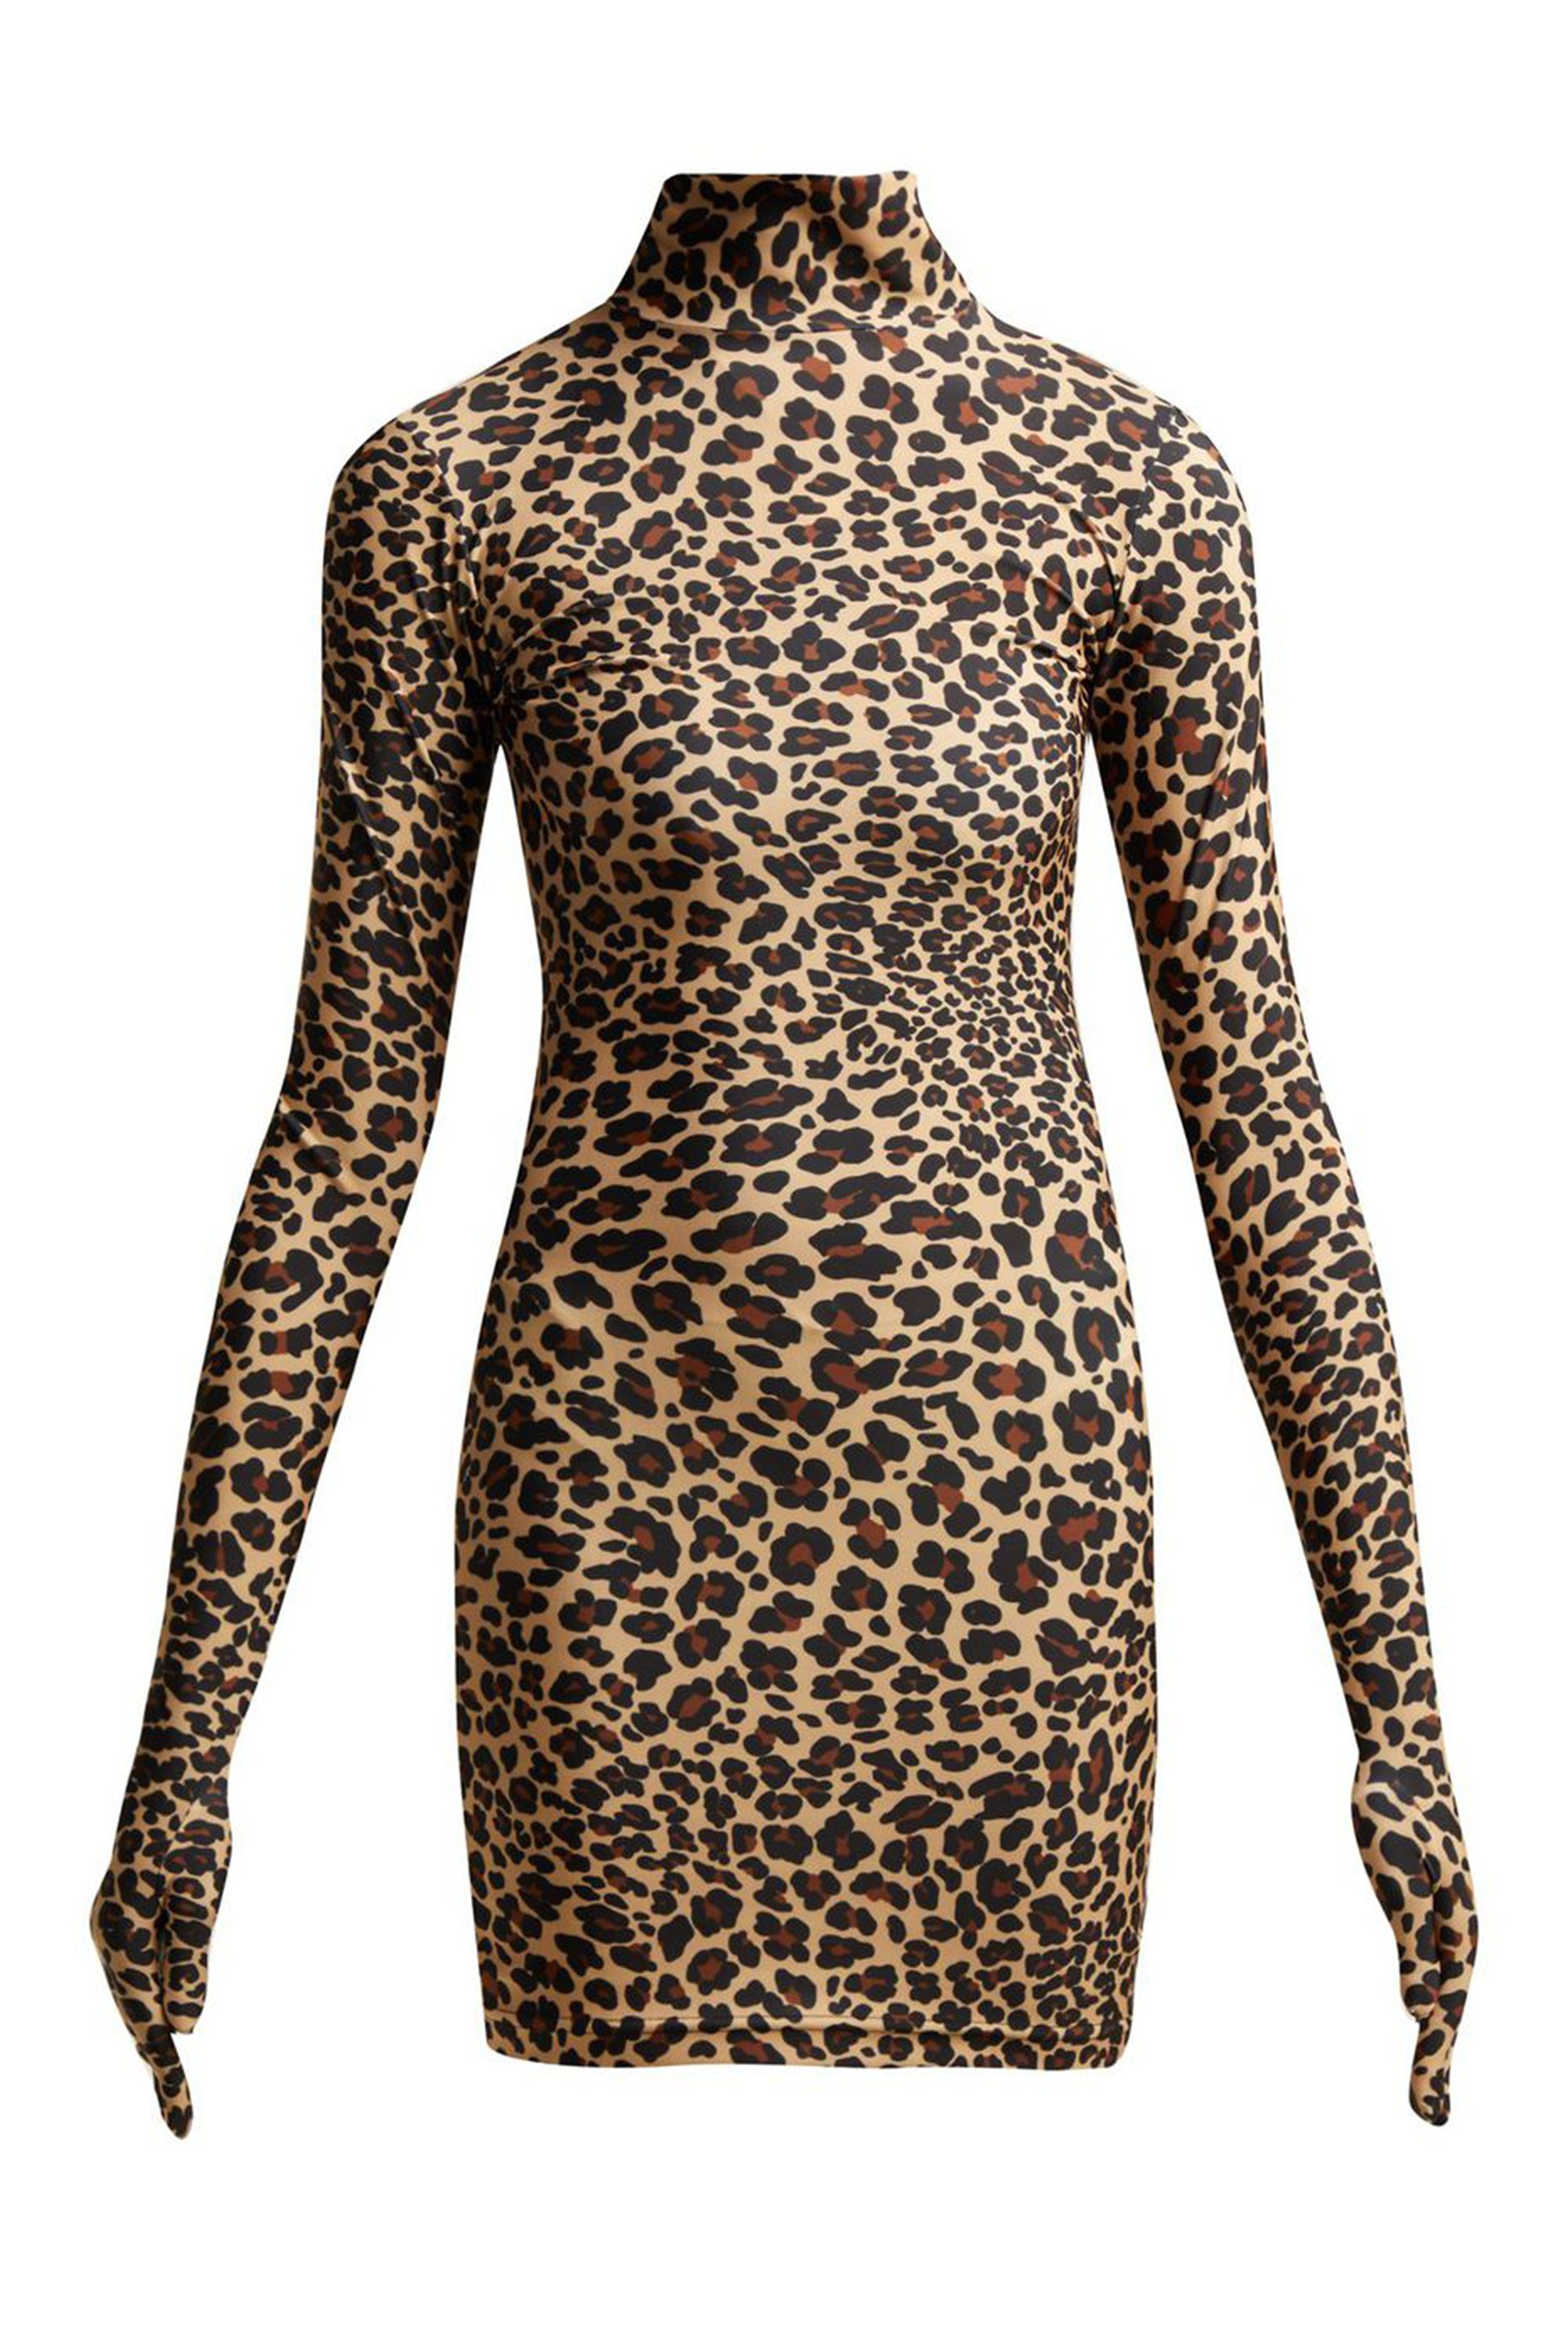 Leopard Print Fashion Trend Style And Outfit Inspiration